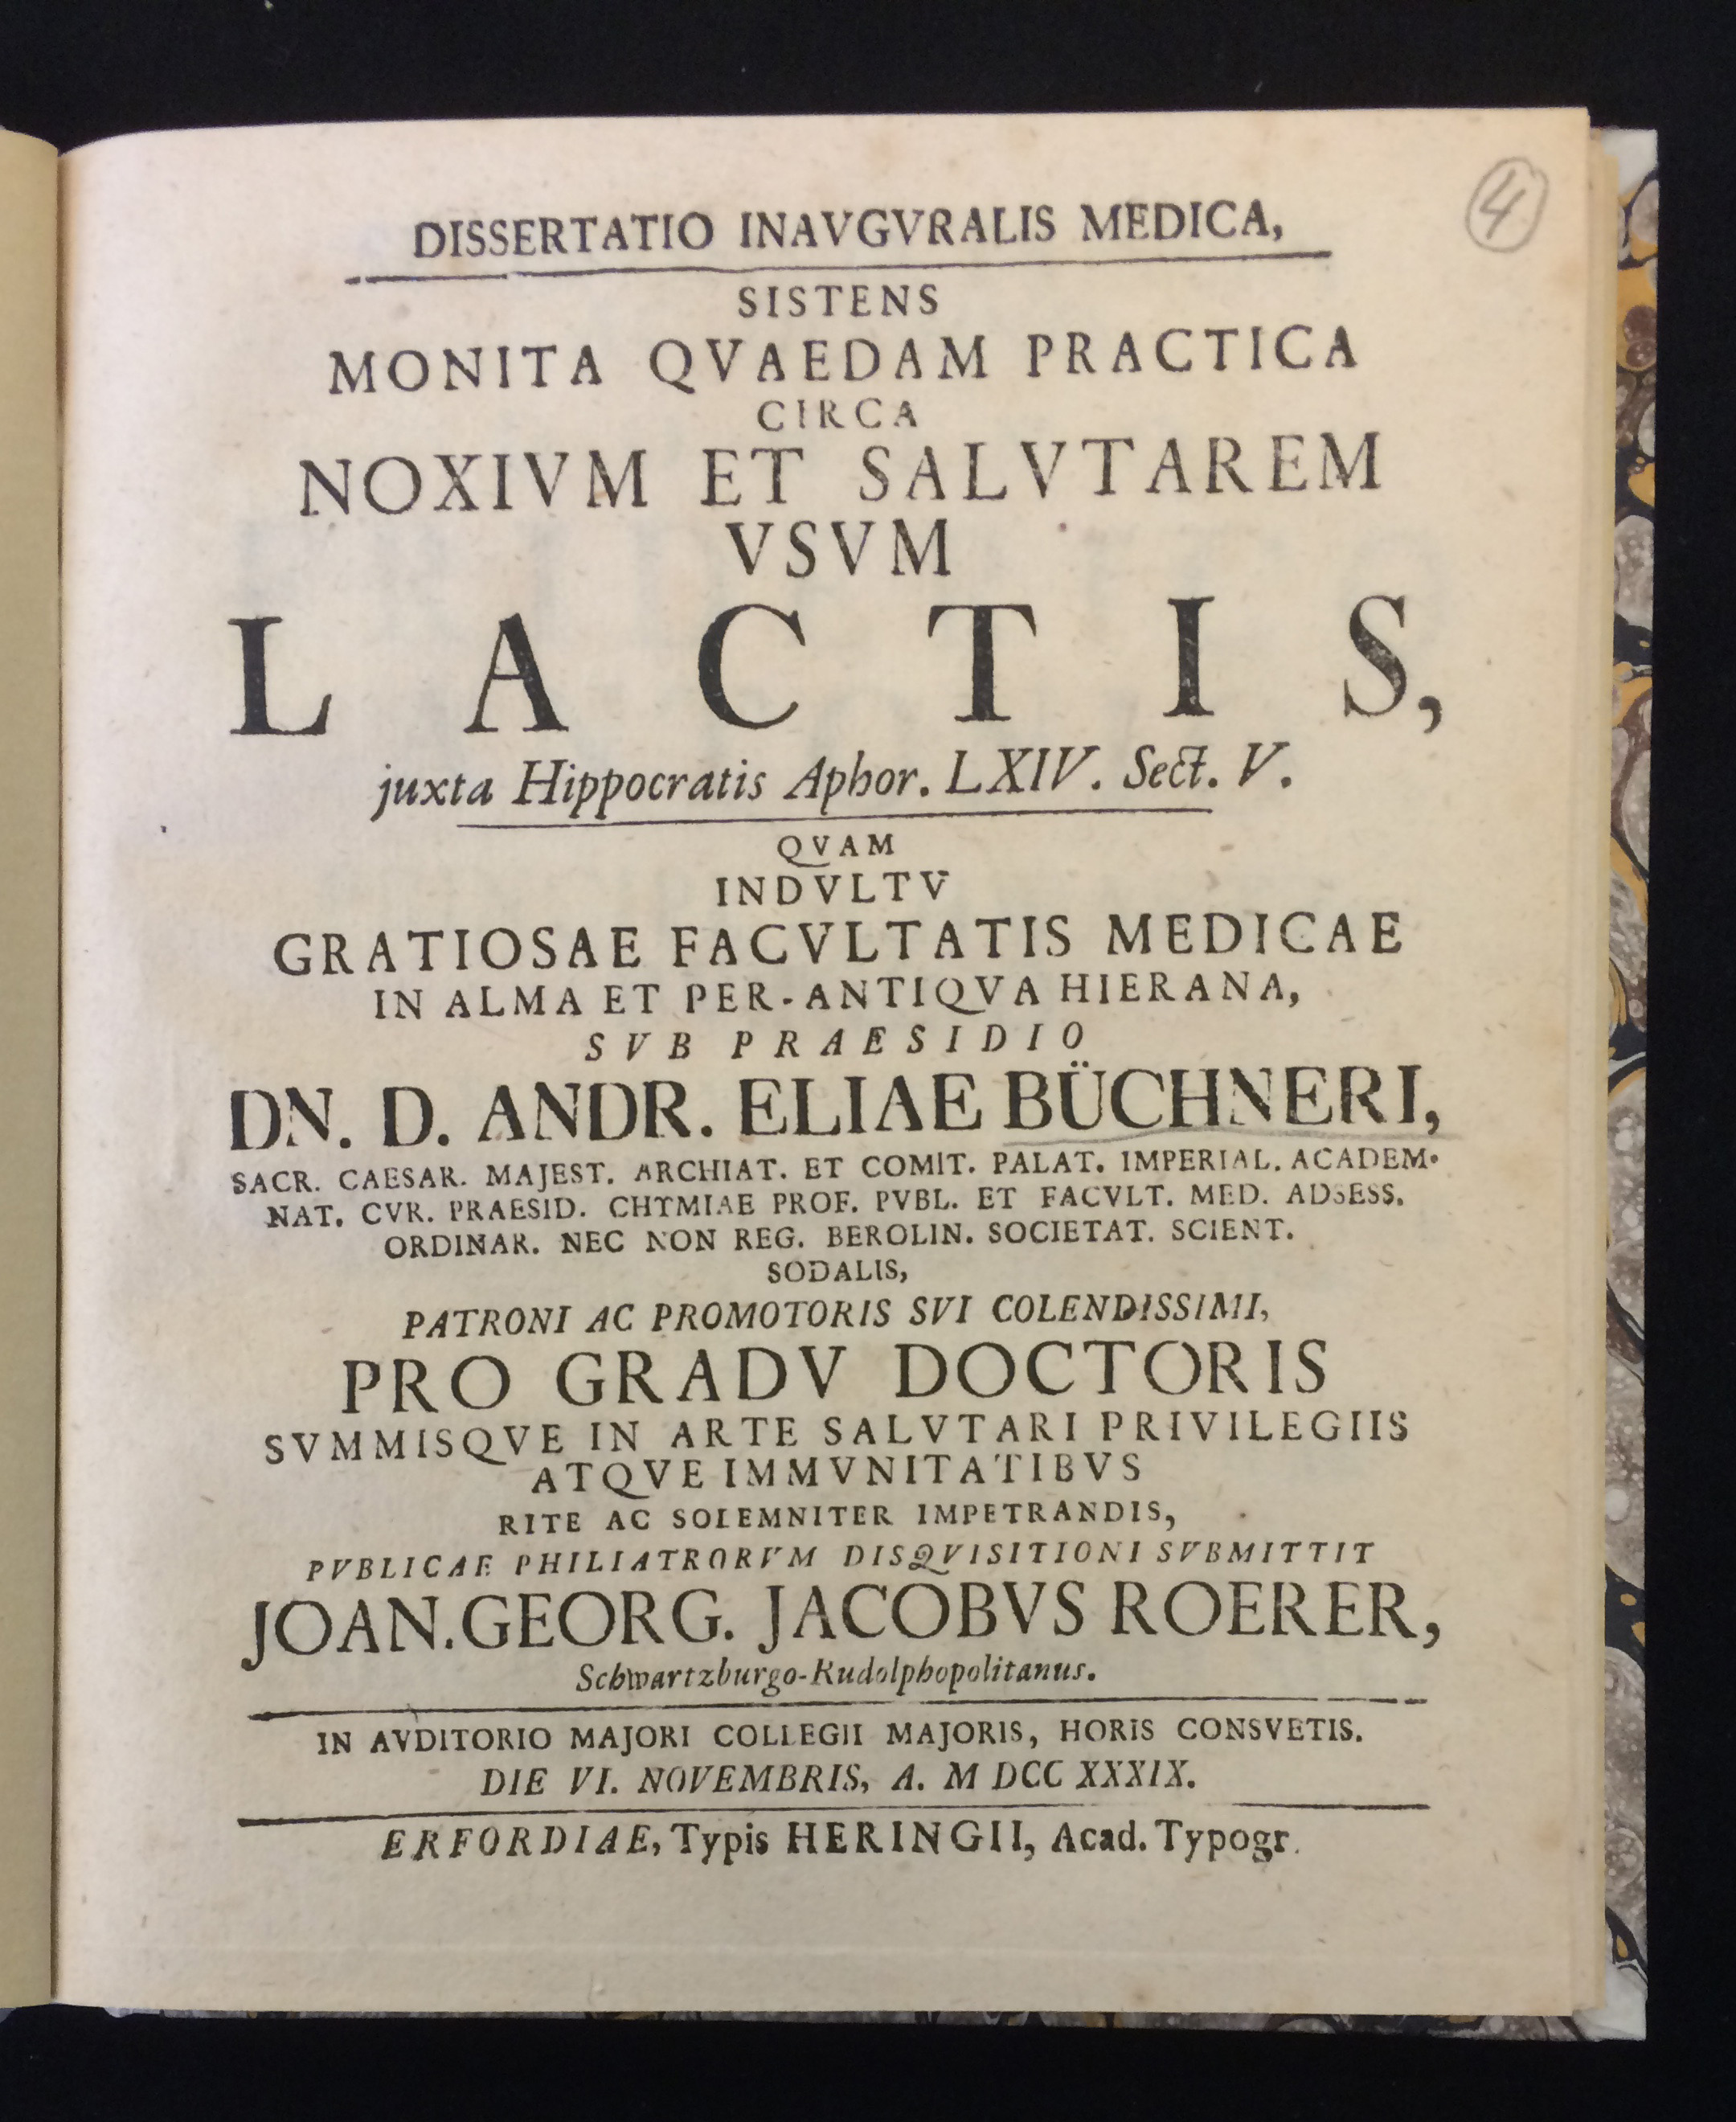 Dissertation on some practical recommendations about the harmful and beneficial use of milk, defended by  Johann Georg Jakob Roerer . Monita quaedam practica circa noxium et salutarem usum lactis (Erfurt: Heringius, 1739)